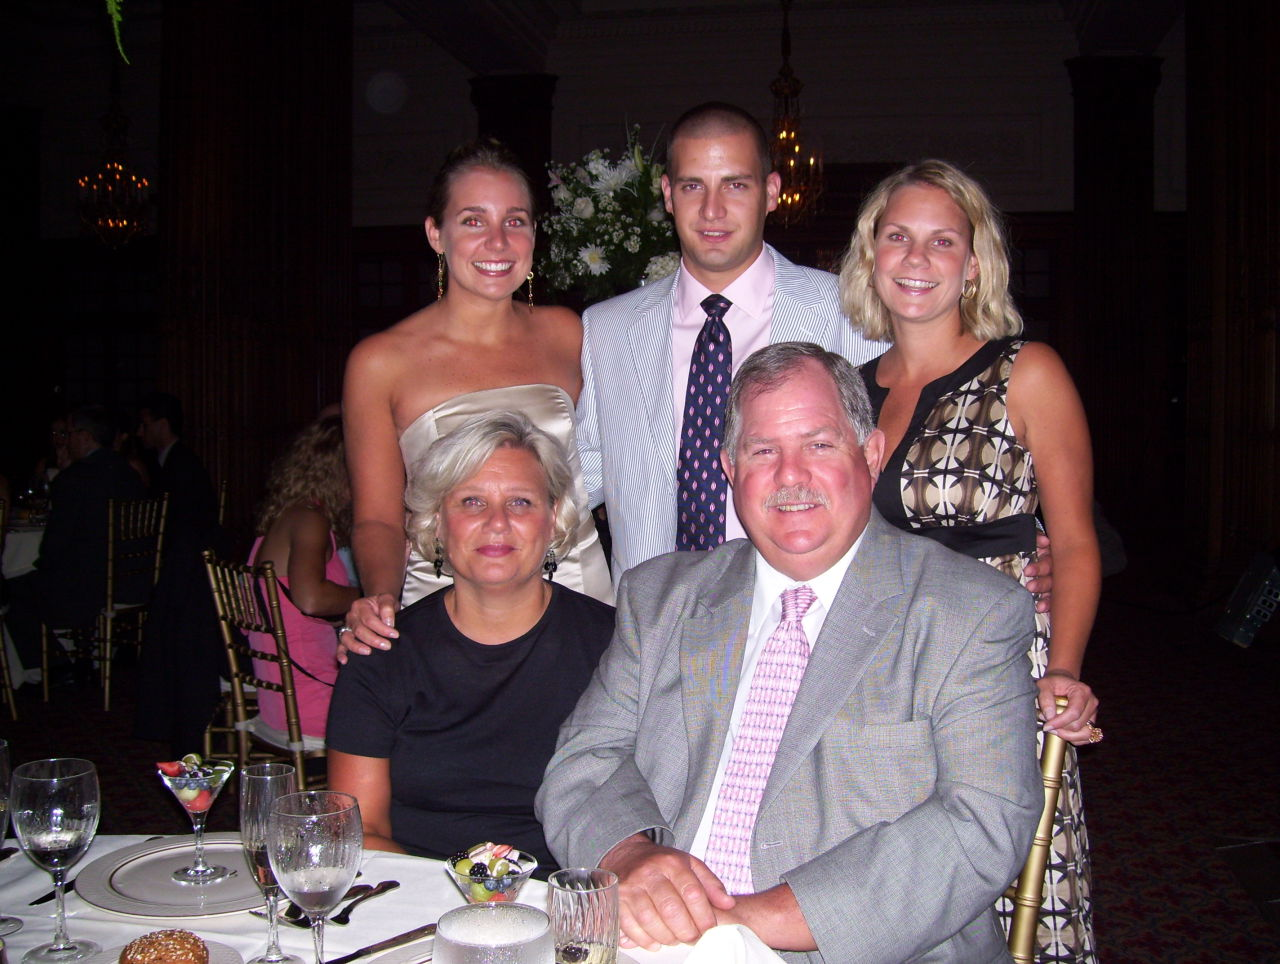 Charles Grugan, center, stands with his two sisters, Carolyn Grugan Noll, left, and Jennifer Grugan Whitehouse, right. Charles' mother, Eileen Grugan and his father, Charles Grugan Sr. sit in the front. (Courtesty/Carolyn Grugan)